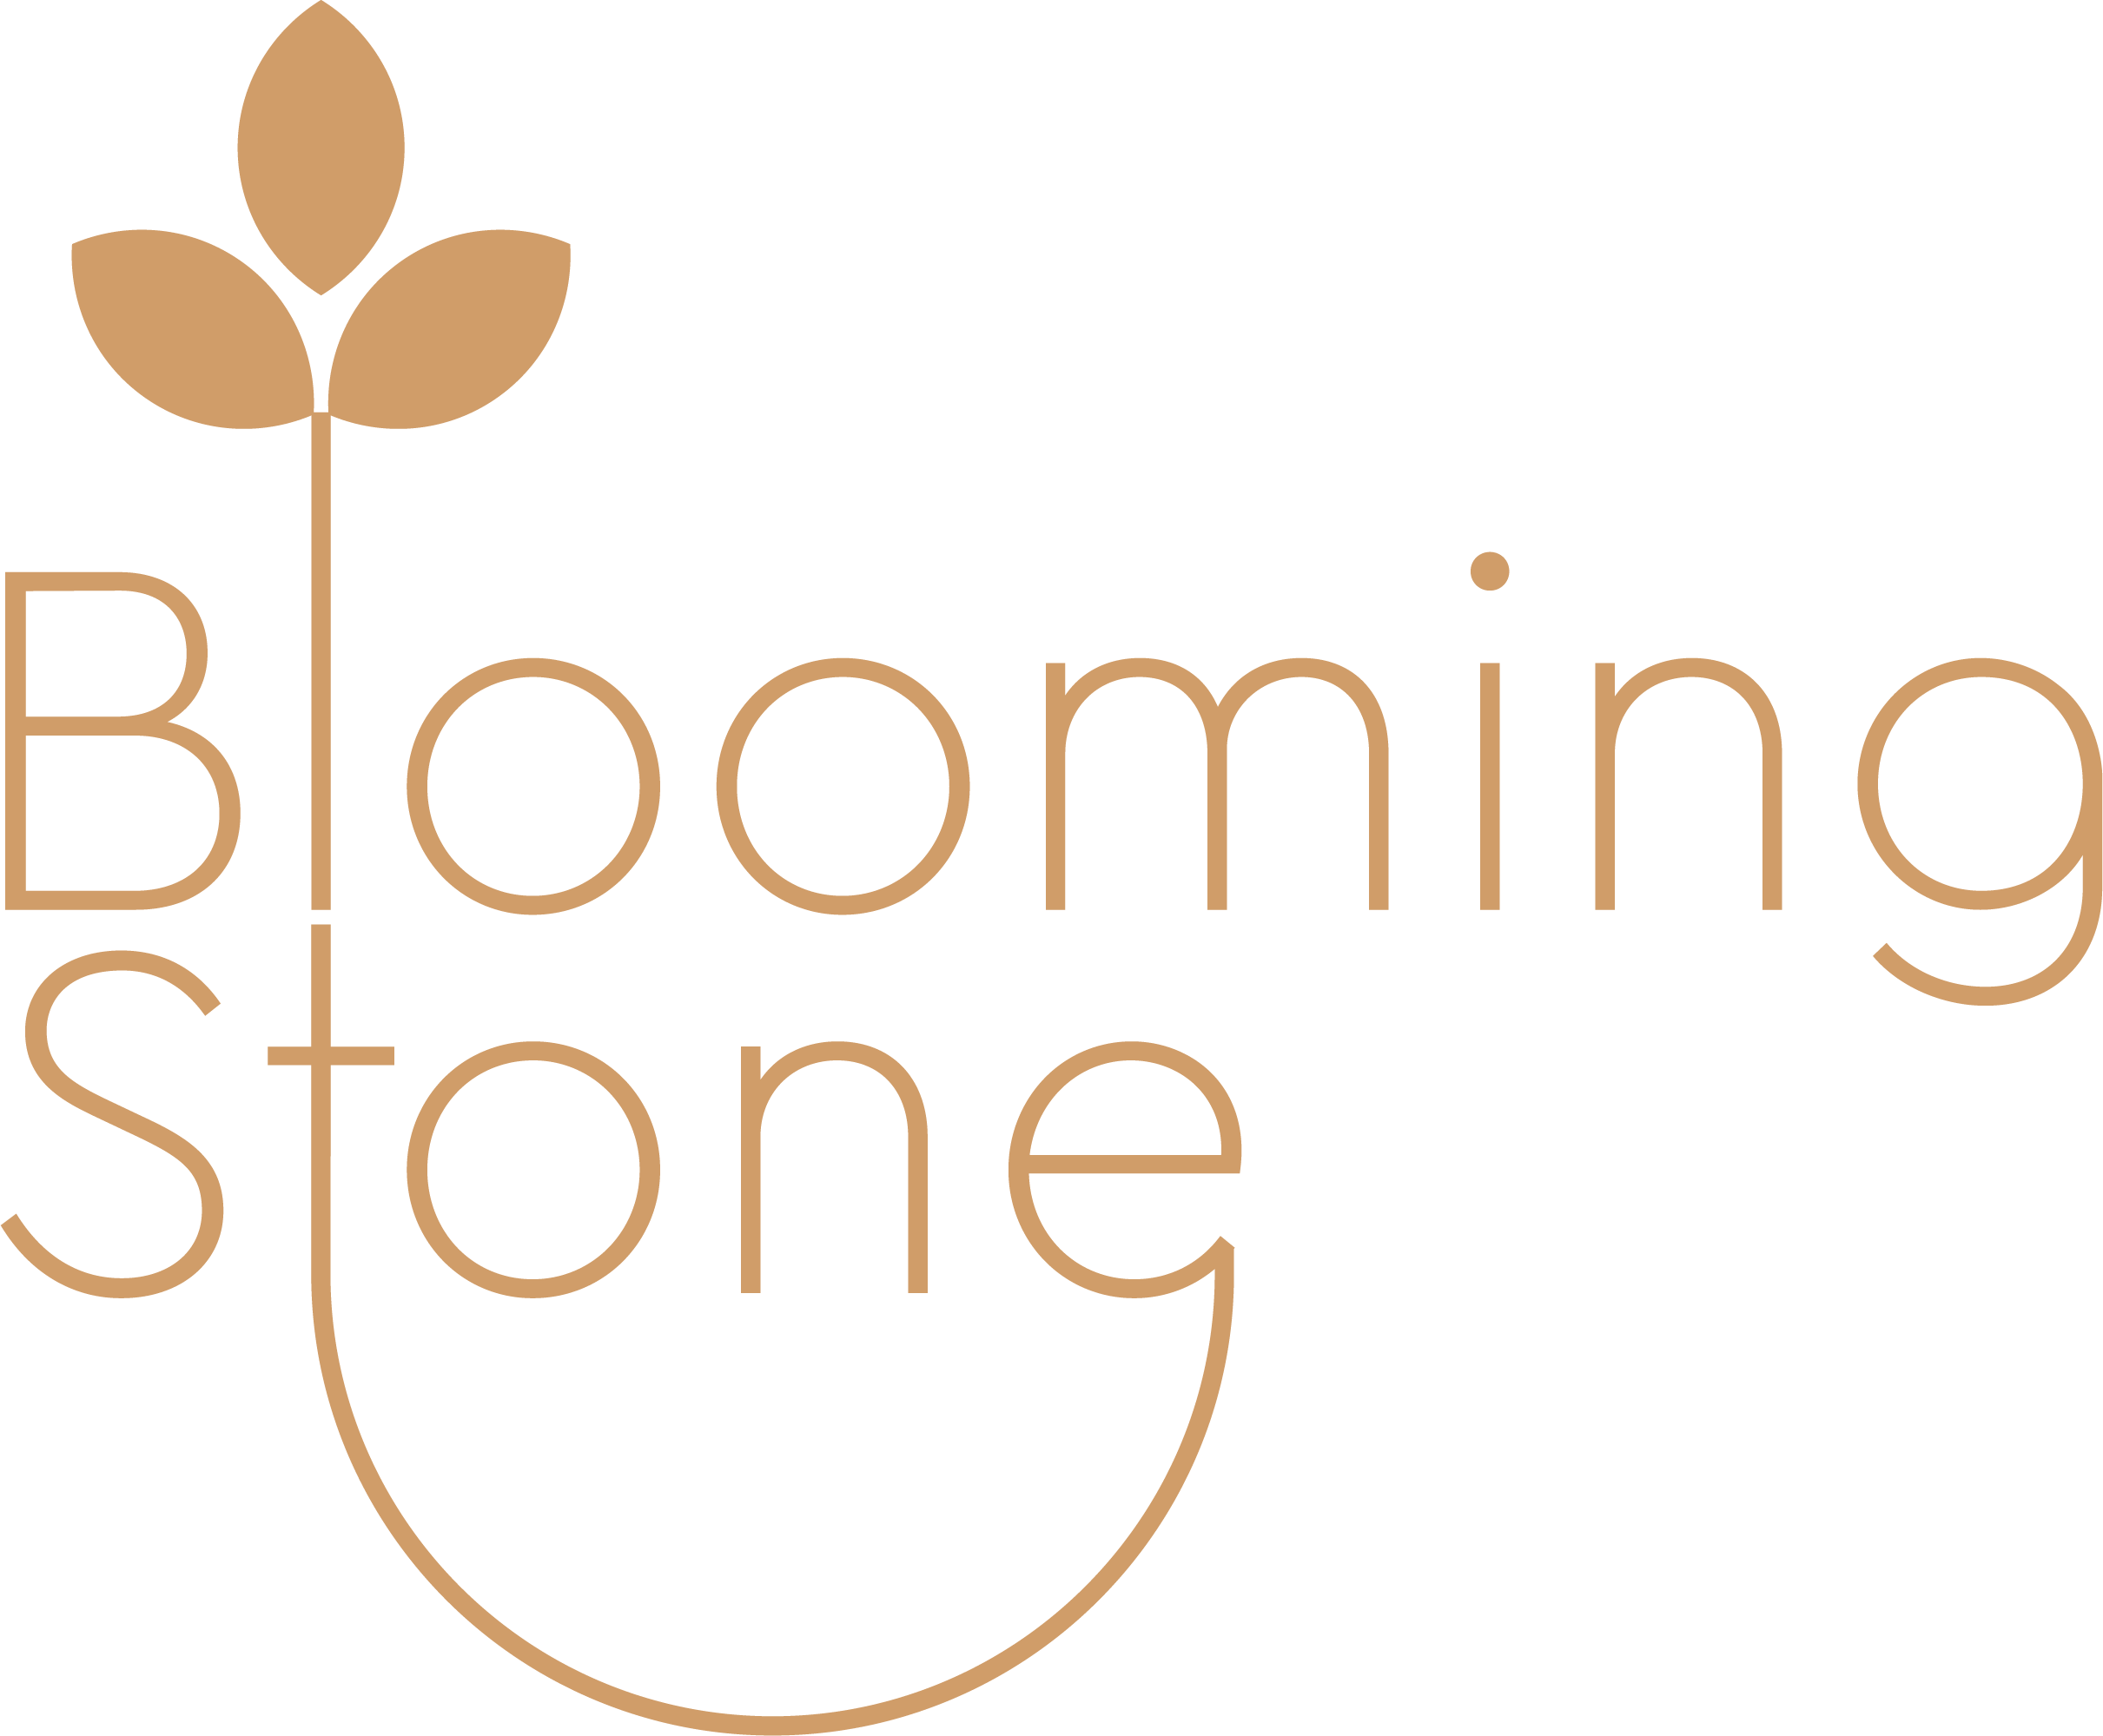 BLOOMING STONE